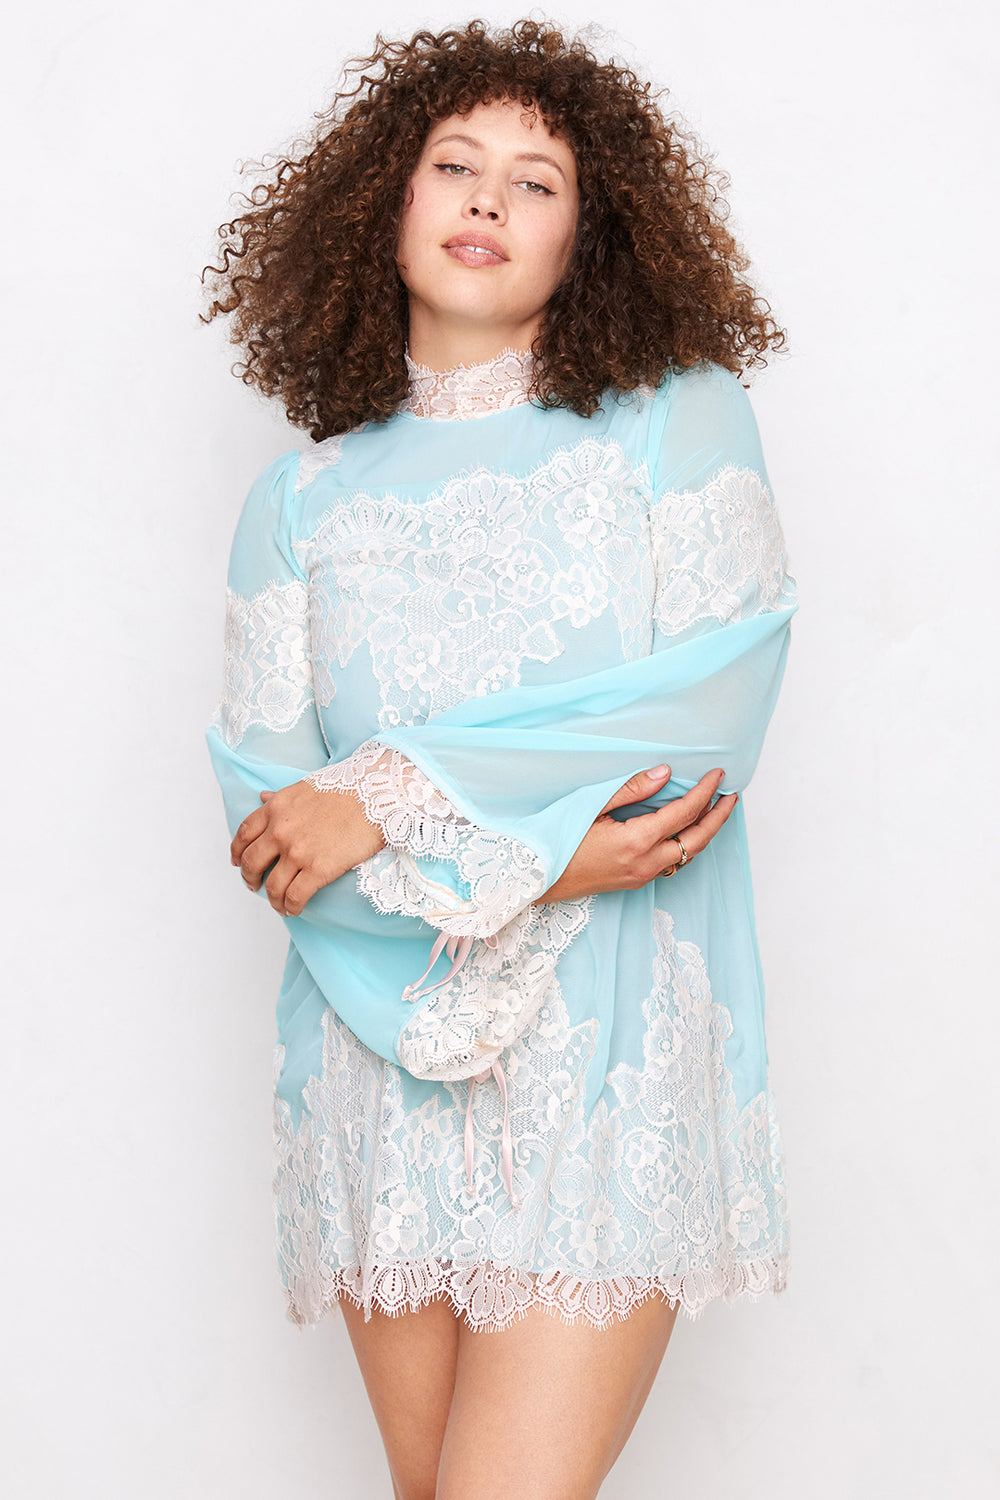 Queen 4 A Day Dress | Bright Baby Blue